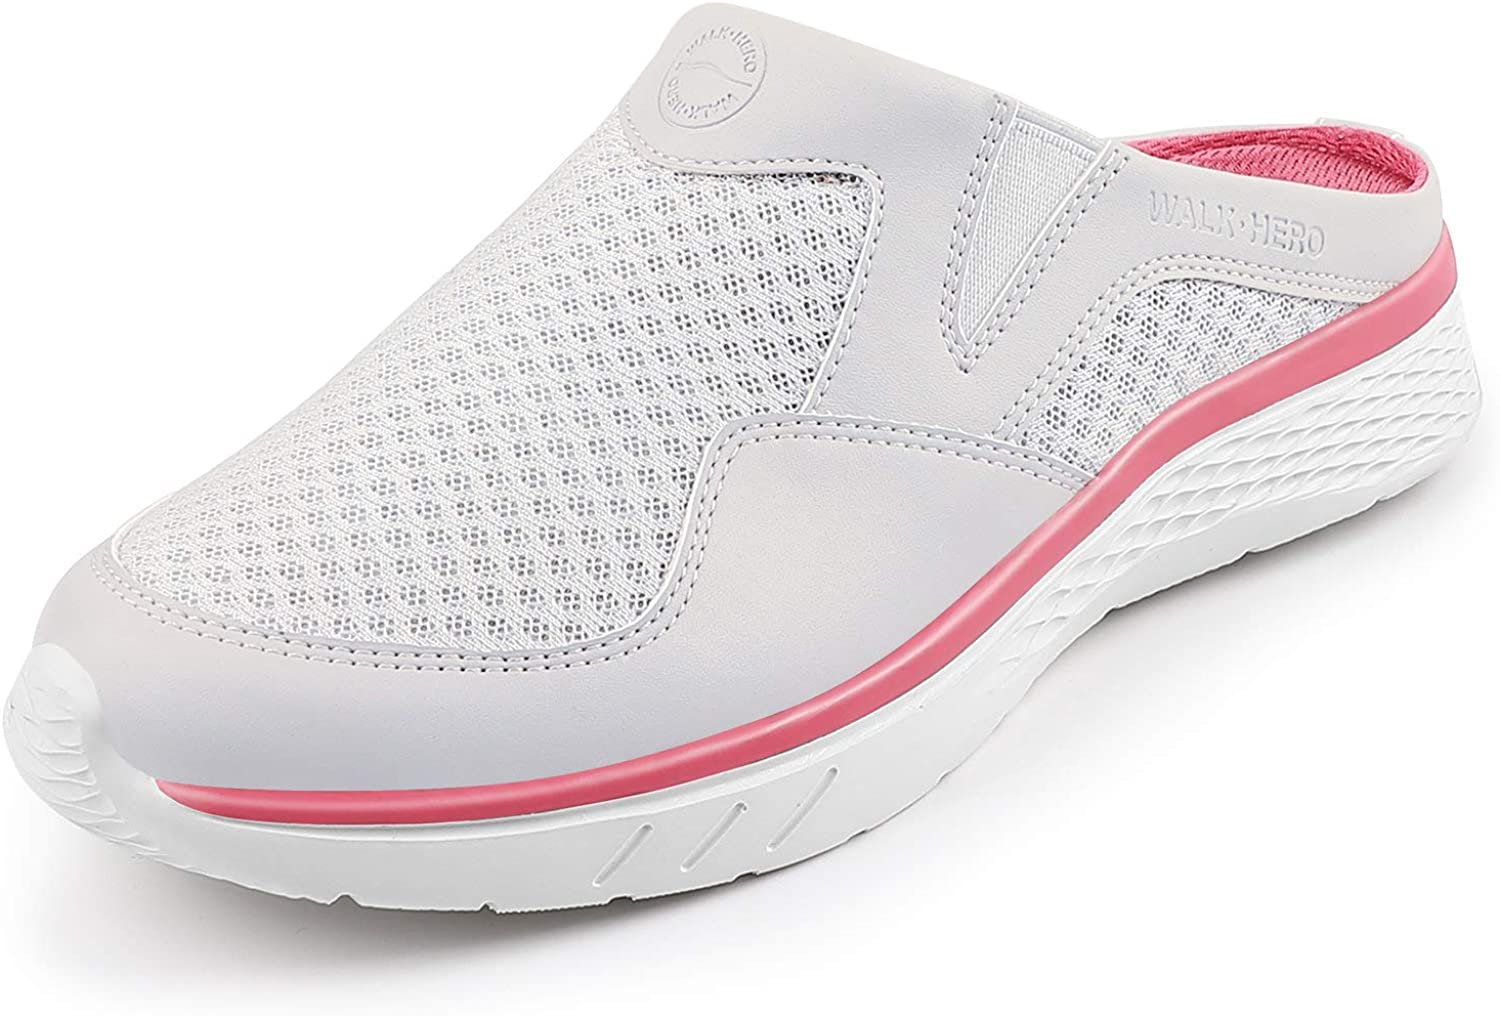 Womens Mule Sneakers - Walking Shoes 70% OFF Outlet Women Discount mail order for Arch Support with